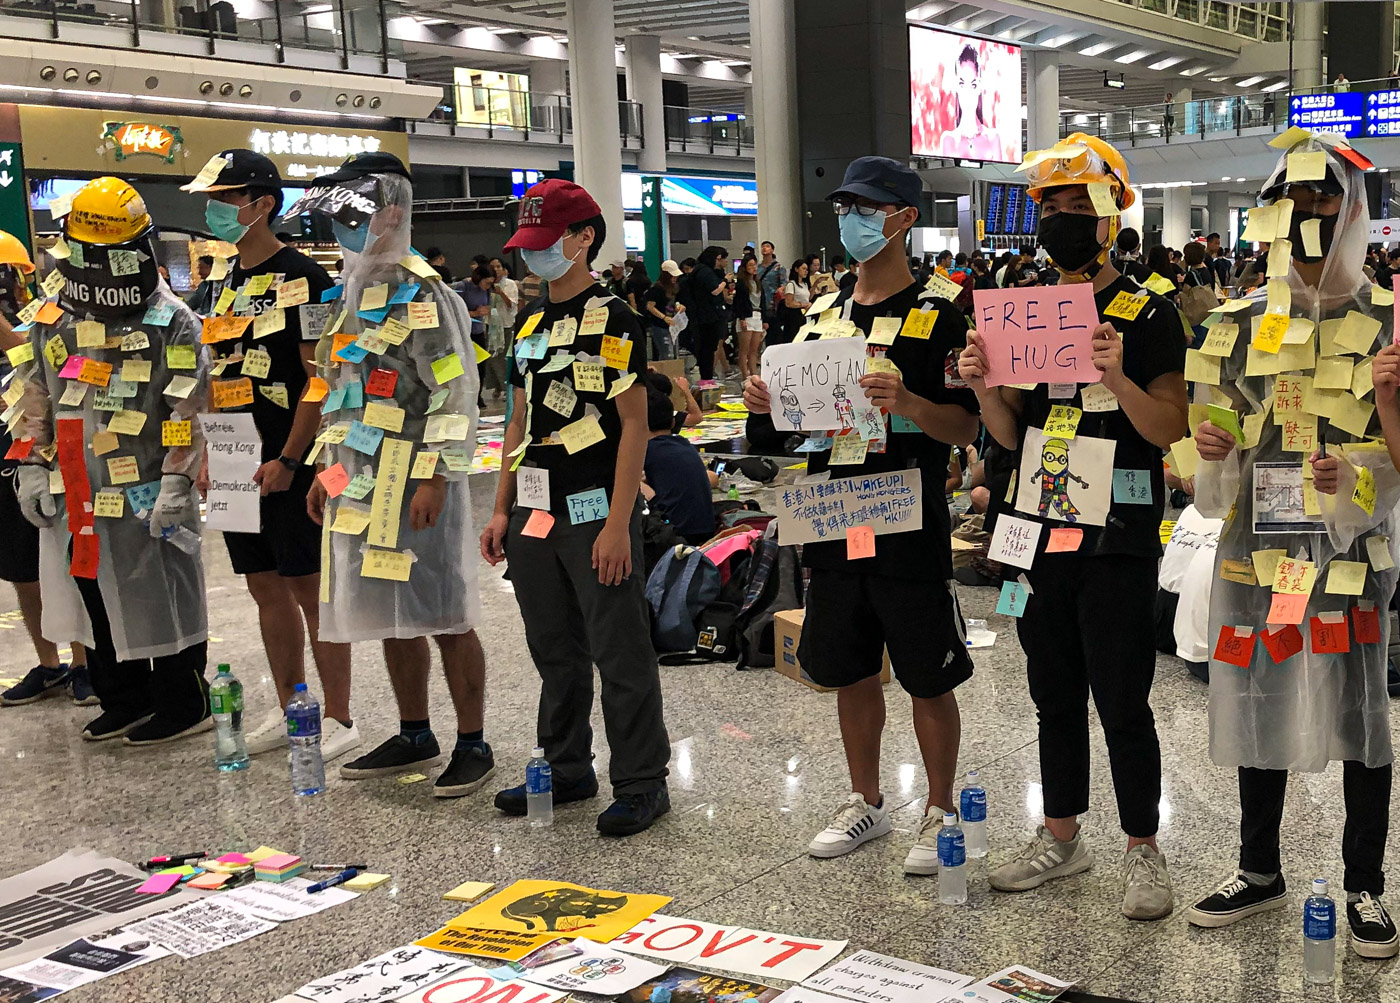 Protesters stand in the Hong Kong airport, covered in small sticky notes placed there by other protesters.